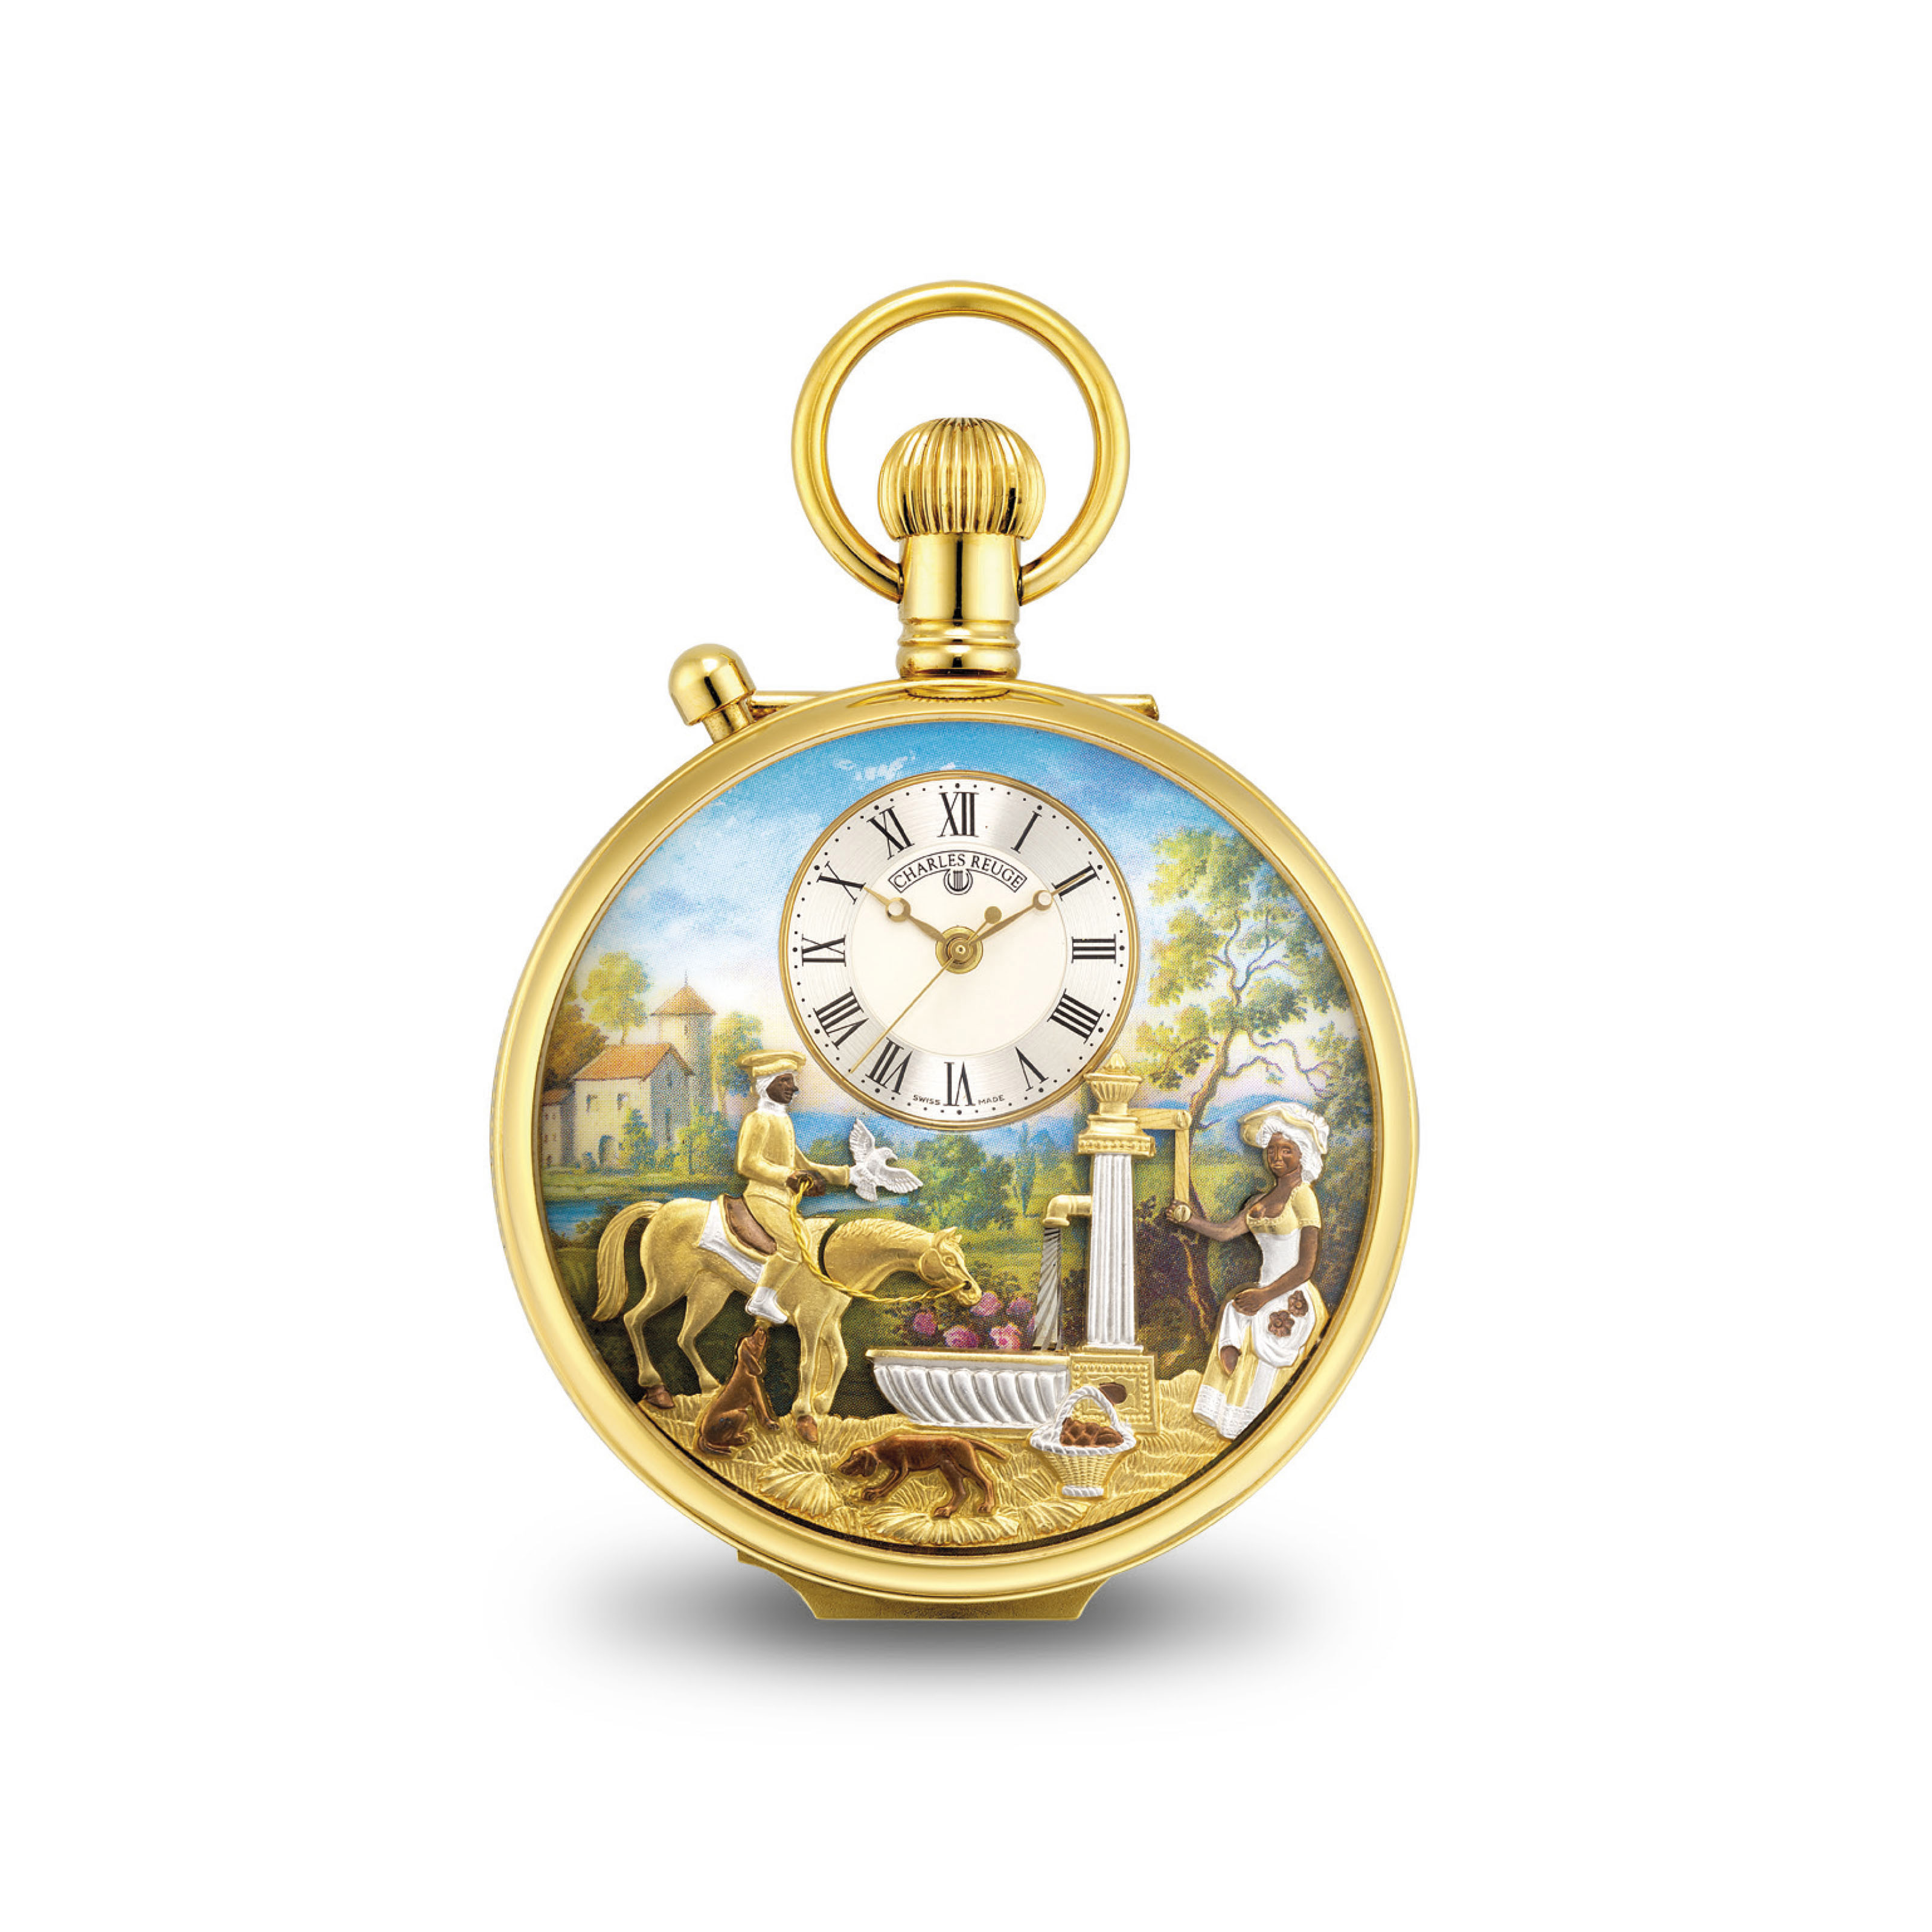 REUGE. A GOLD-PLATED OPENFACE KEYLESS LEVER WATCH WITH SWEEP CENTRE SECONDS AND MUSICAL AUTOMATON